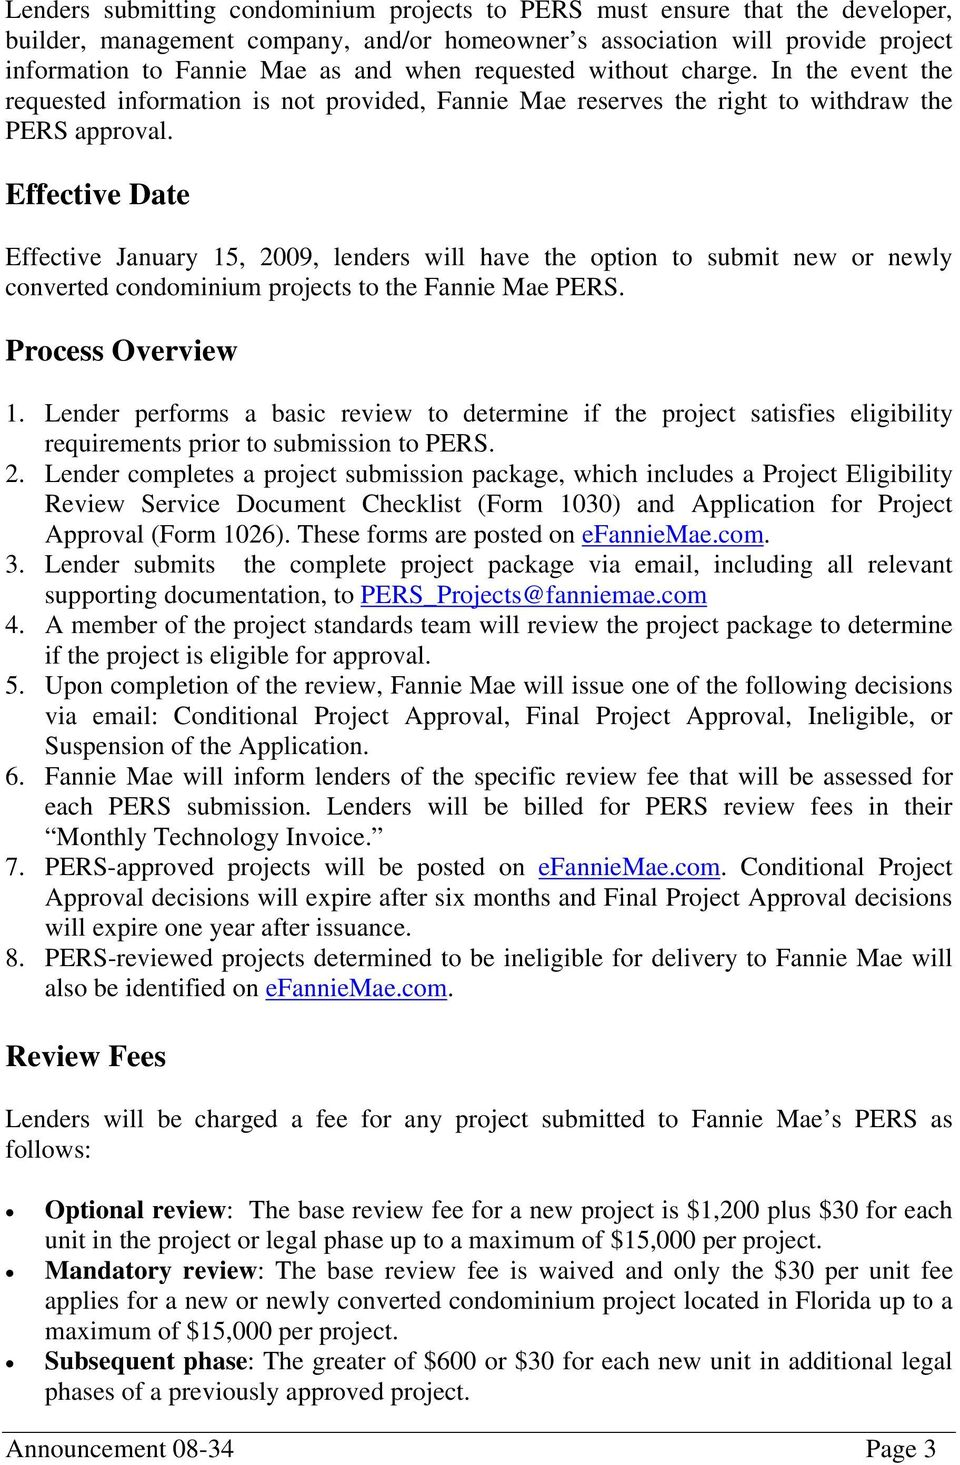 Effective Date Effective January 15, 2009, lenders will have the option to submit new or newly converted condominium projects to the Fannie Mae PERS. Process Overview 1.